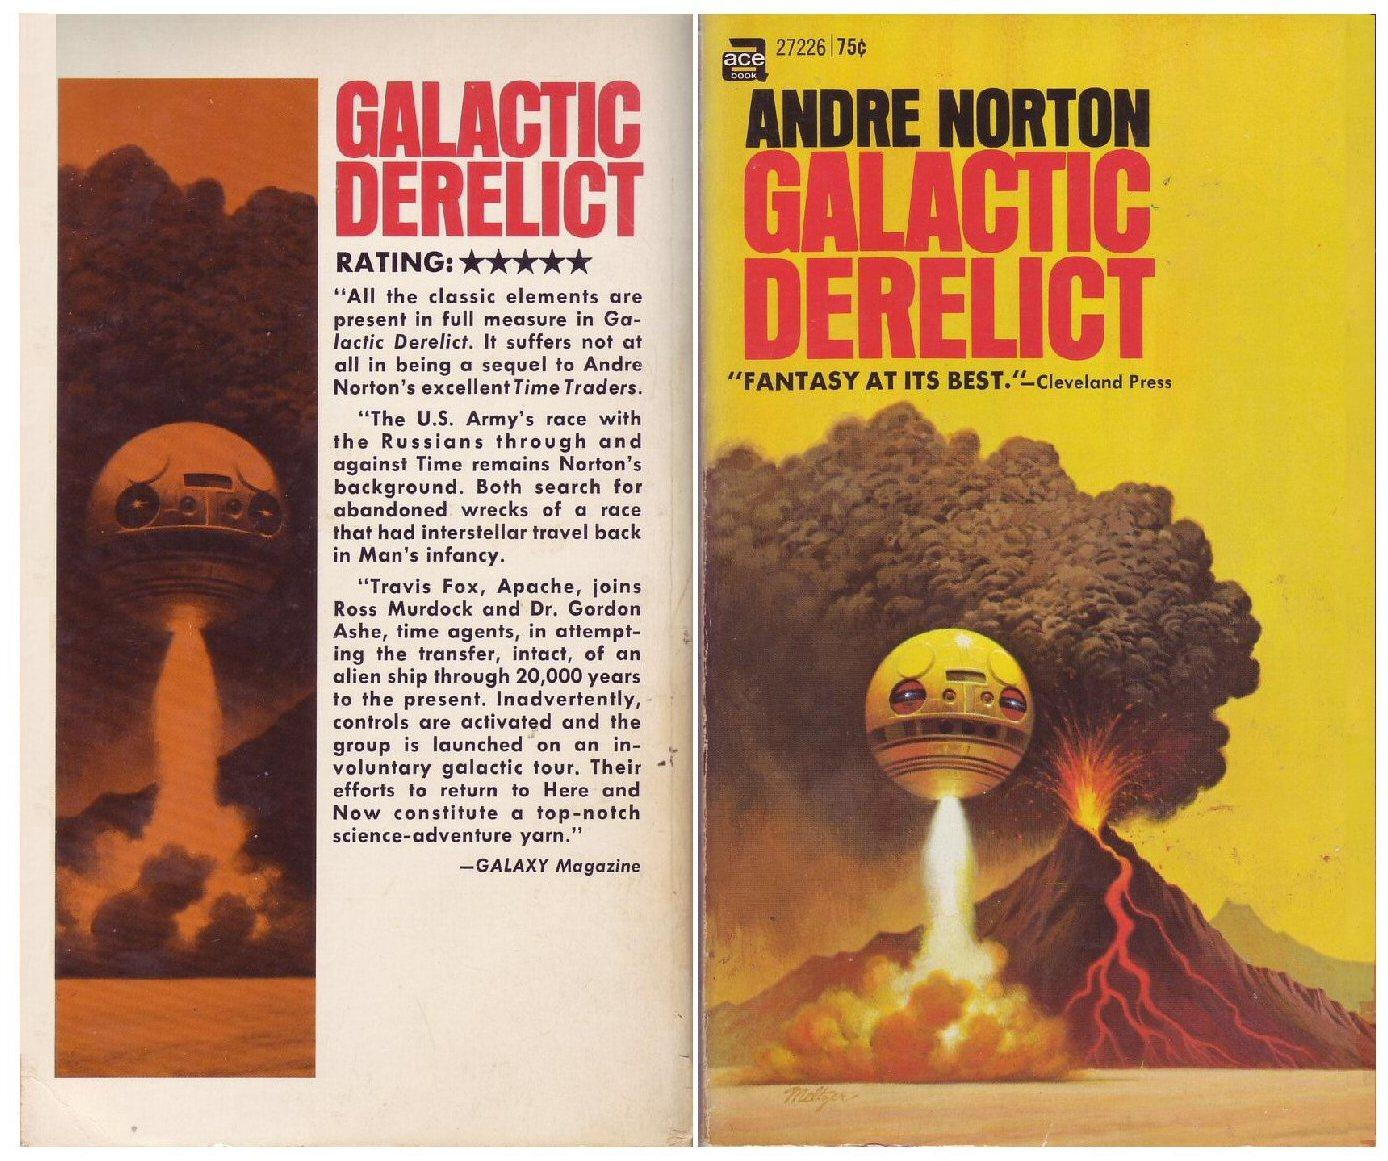 black gate  u00bb articles  u00bb everything u2019s coming up aces  all the covers of galactic derelict